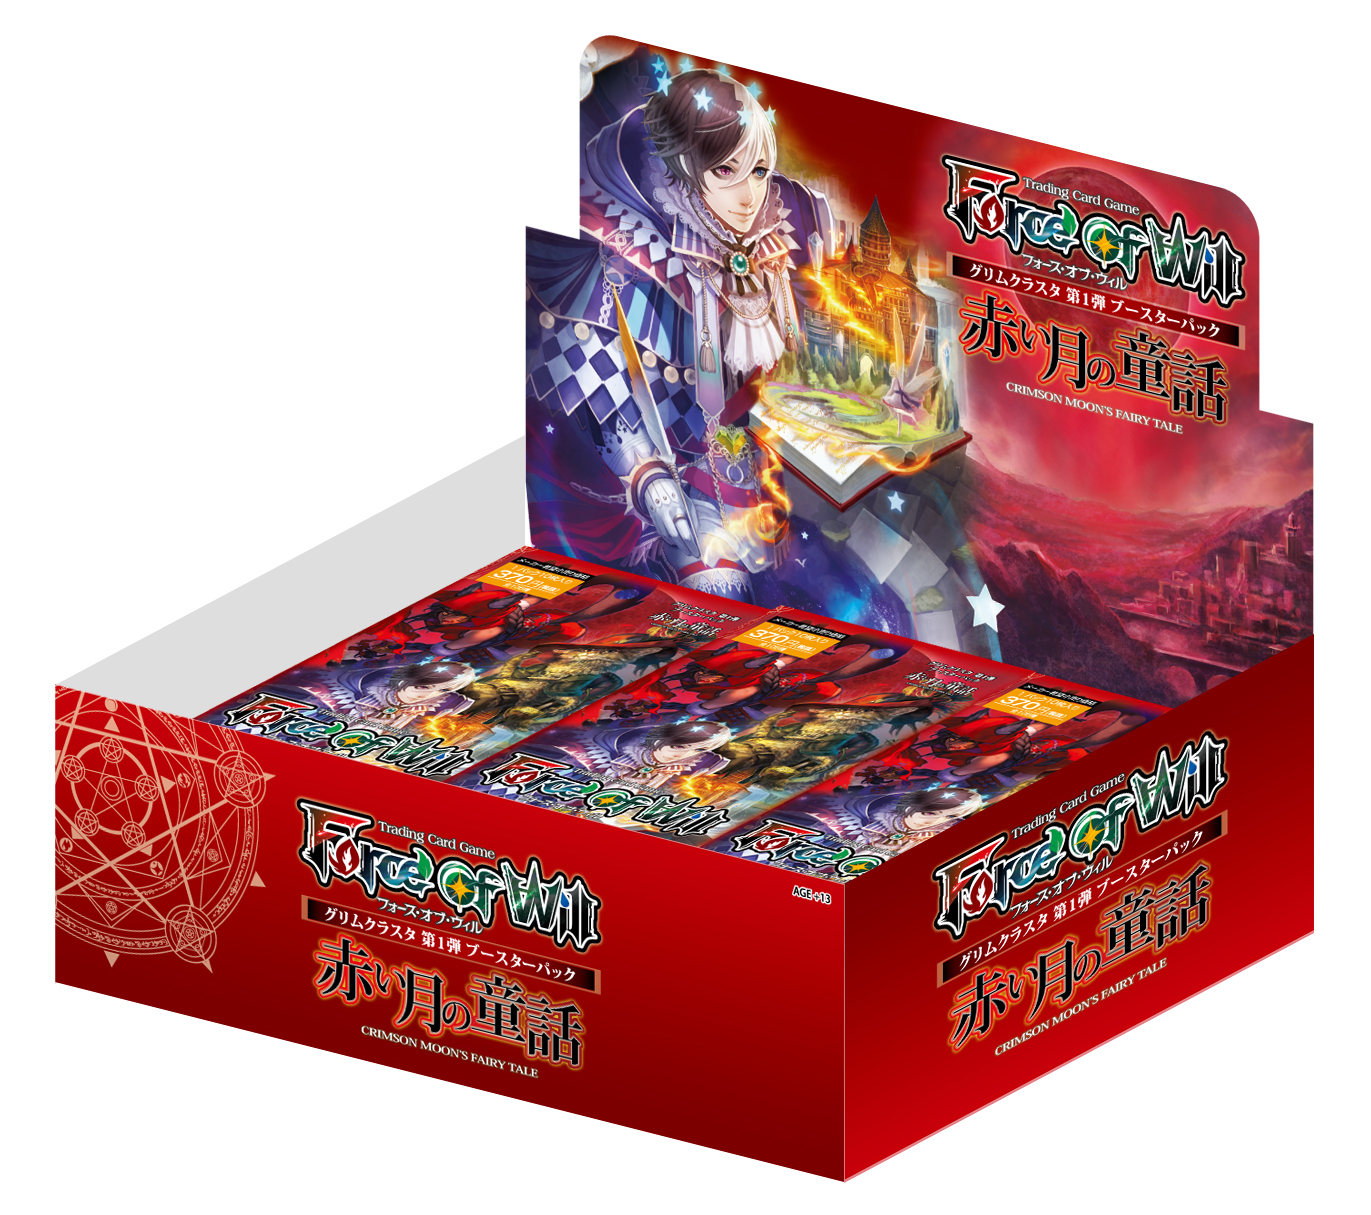 Force of Will Crimson Moons Fairy Tale Booster Box